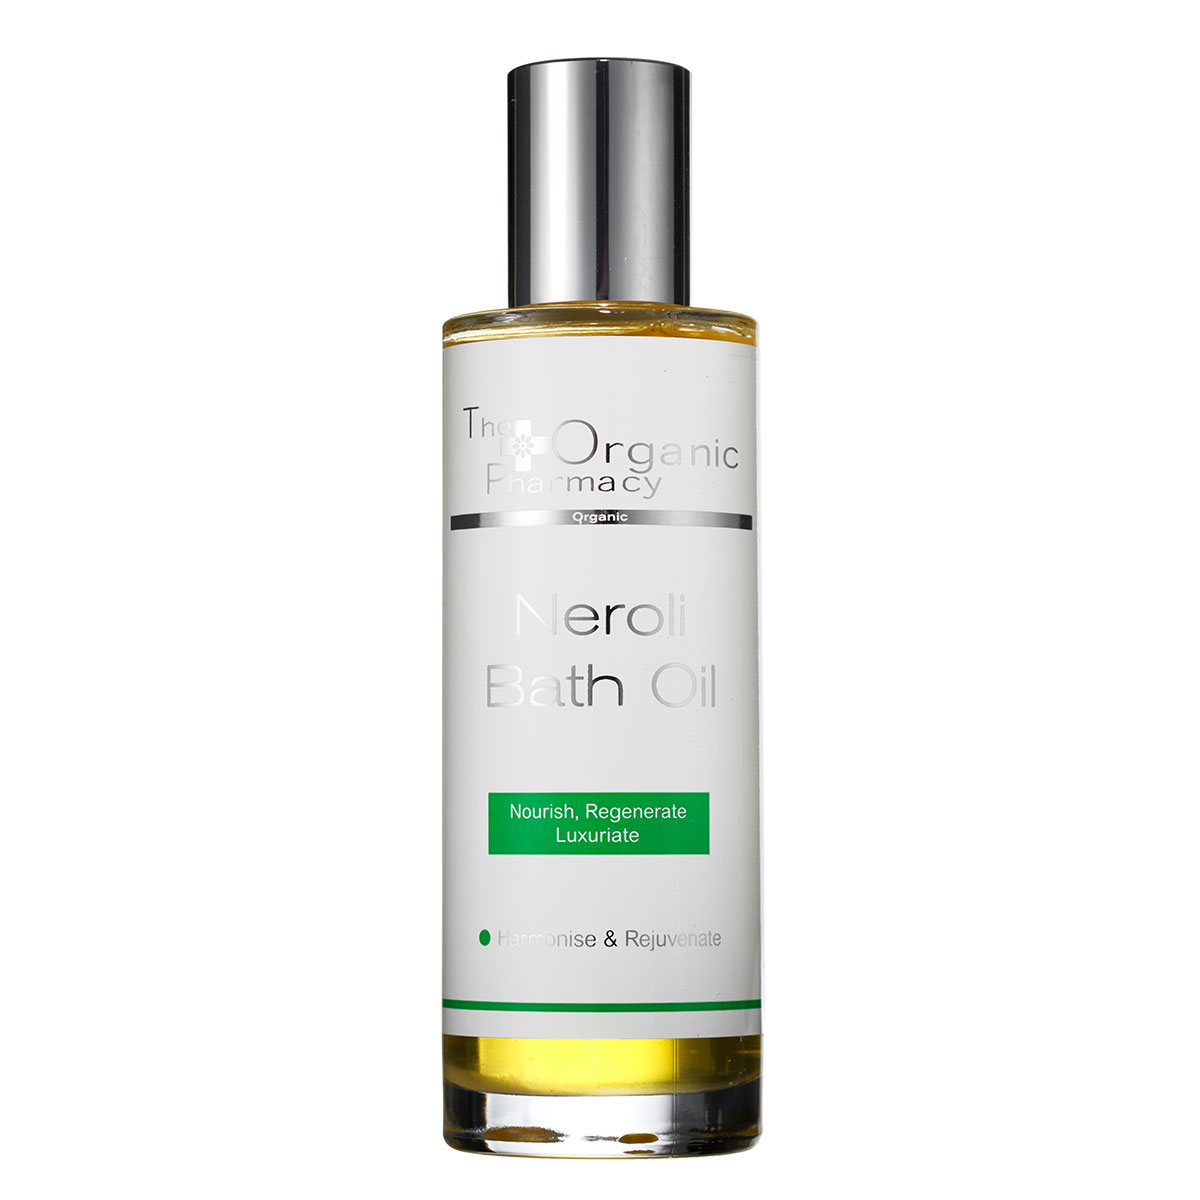 Billede af The Organic Pharmacy Neroli Bath Oil - 100 ml